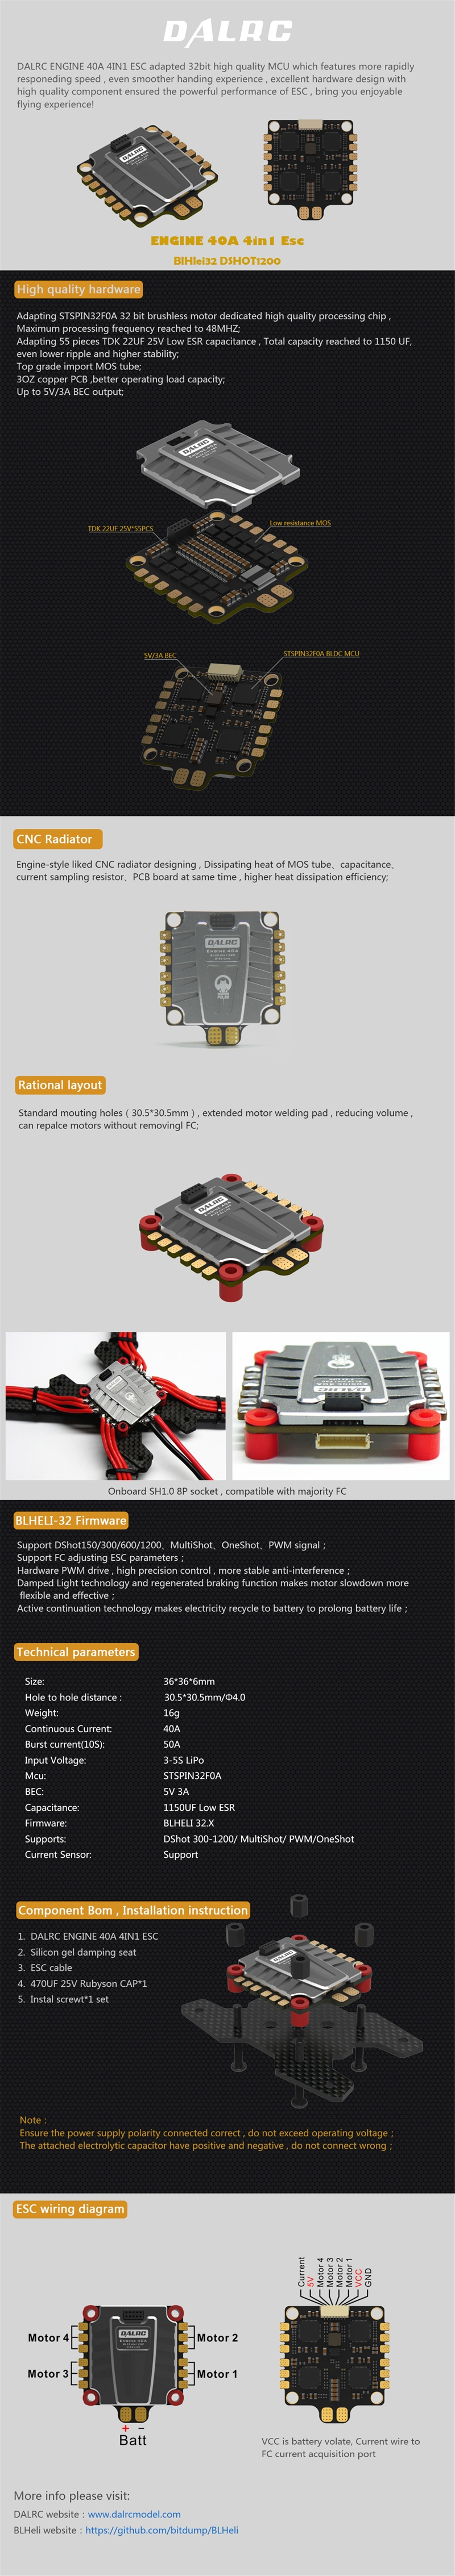 DALRC ENGINE 40A 3-5S Blheli_32 4 in 1 Brushless ESC DSHOT1200 Ready w/ 5V BEC for FPV Racing Drone